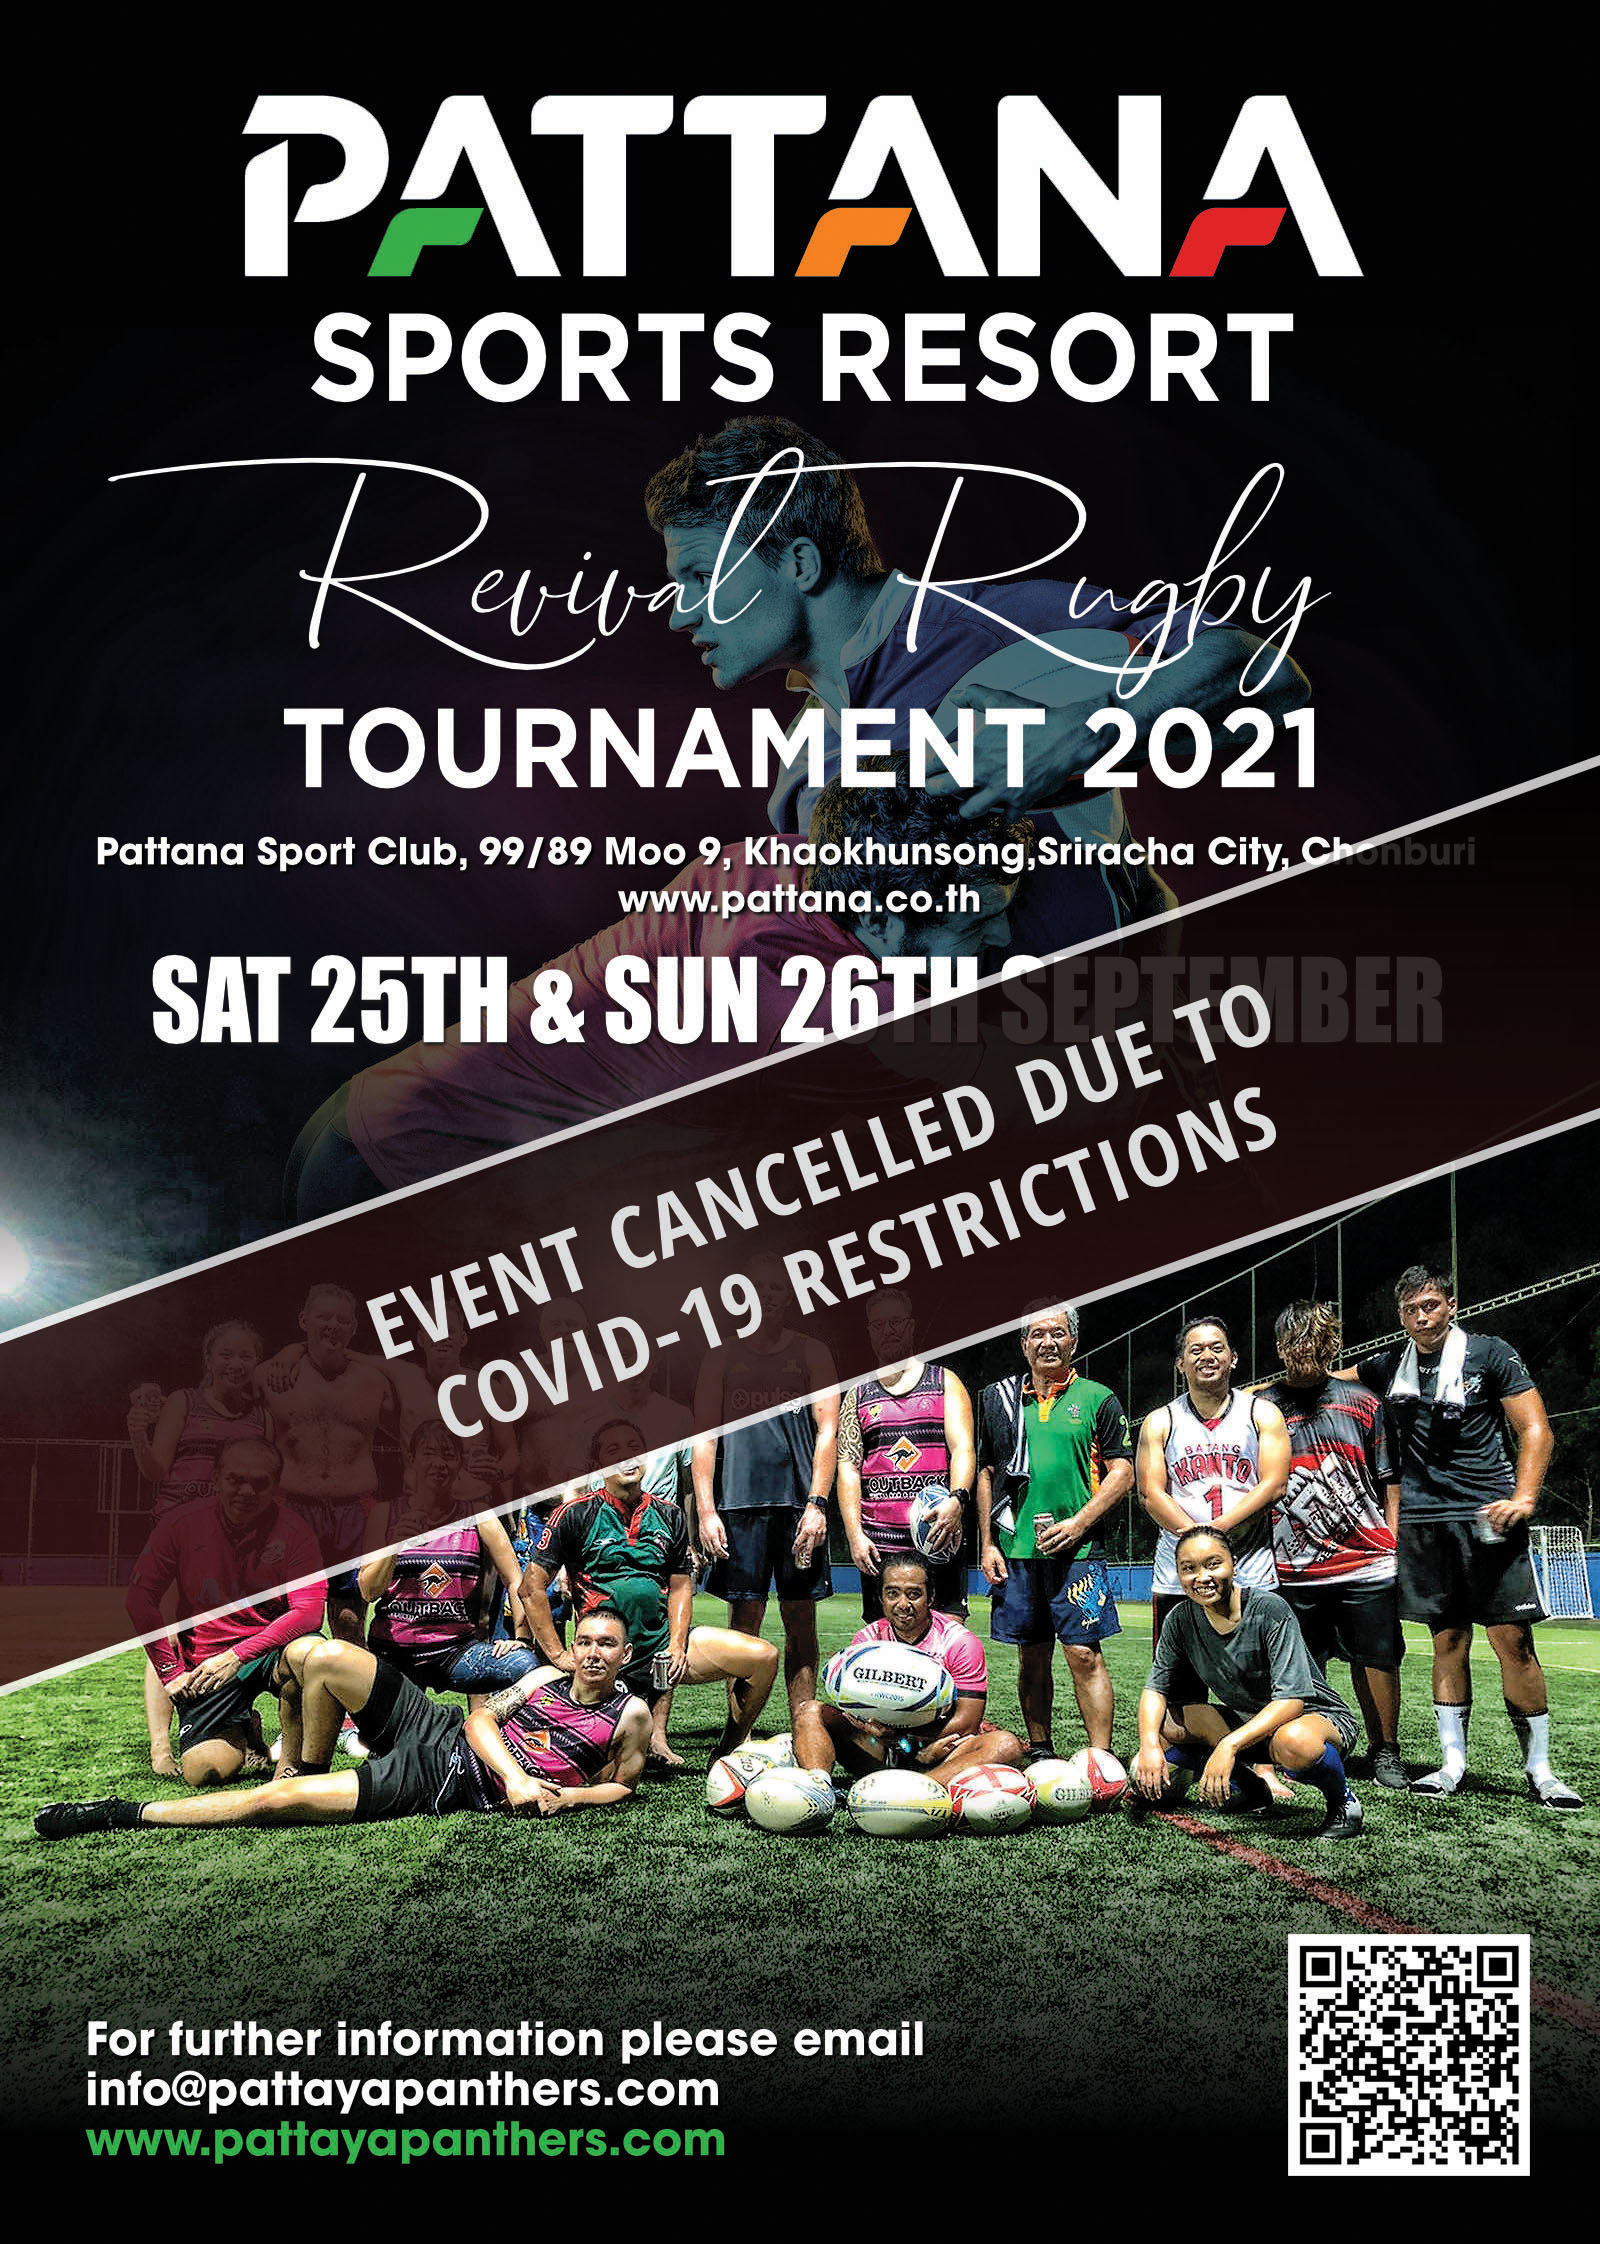 Revival Rugby 2021